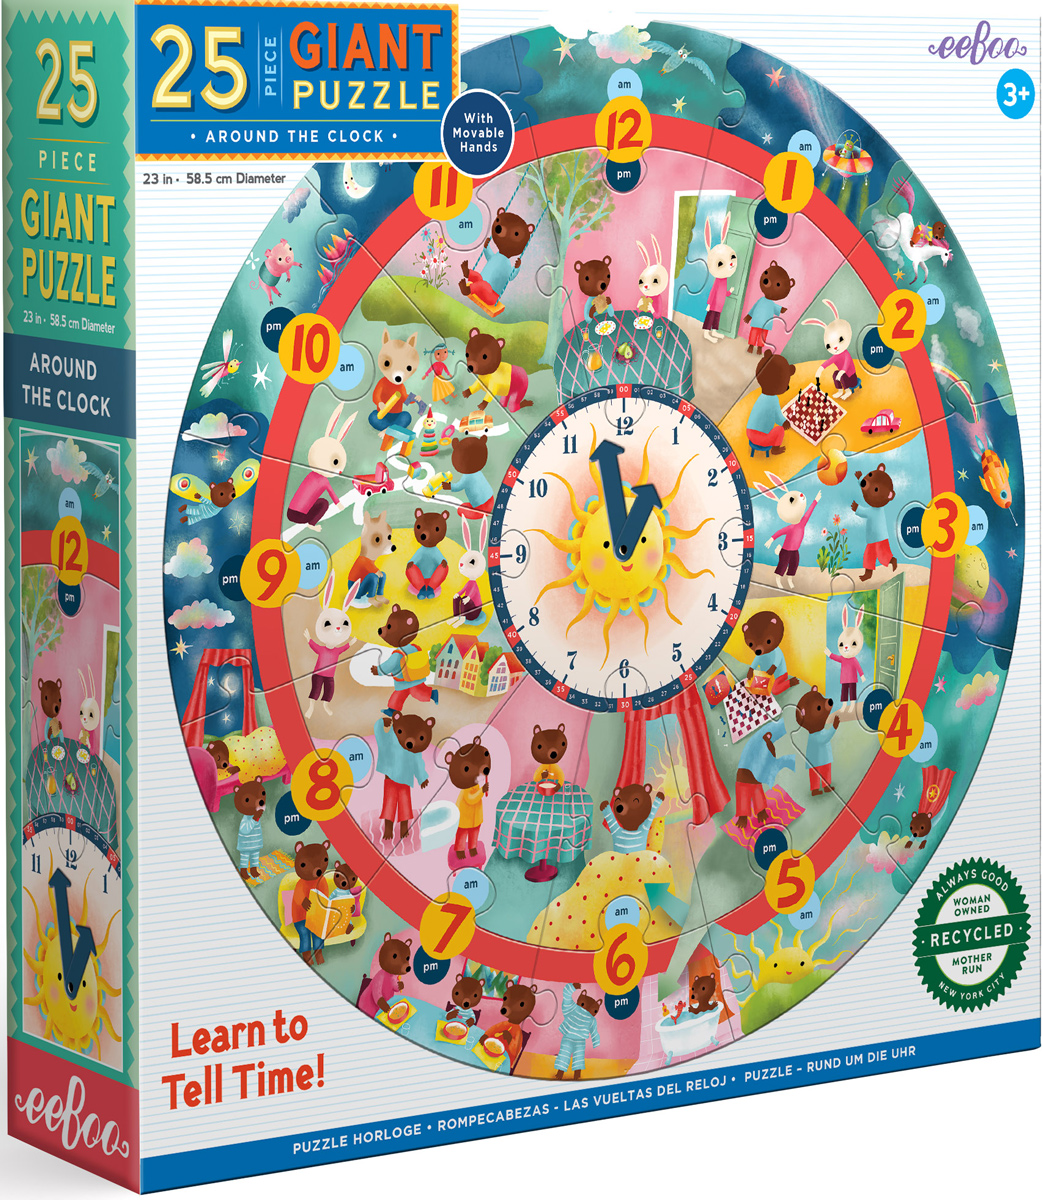 Around the Clock Puzzle Educational Jigsaw Puzzle